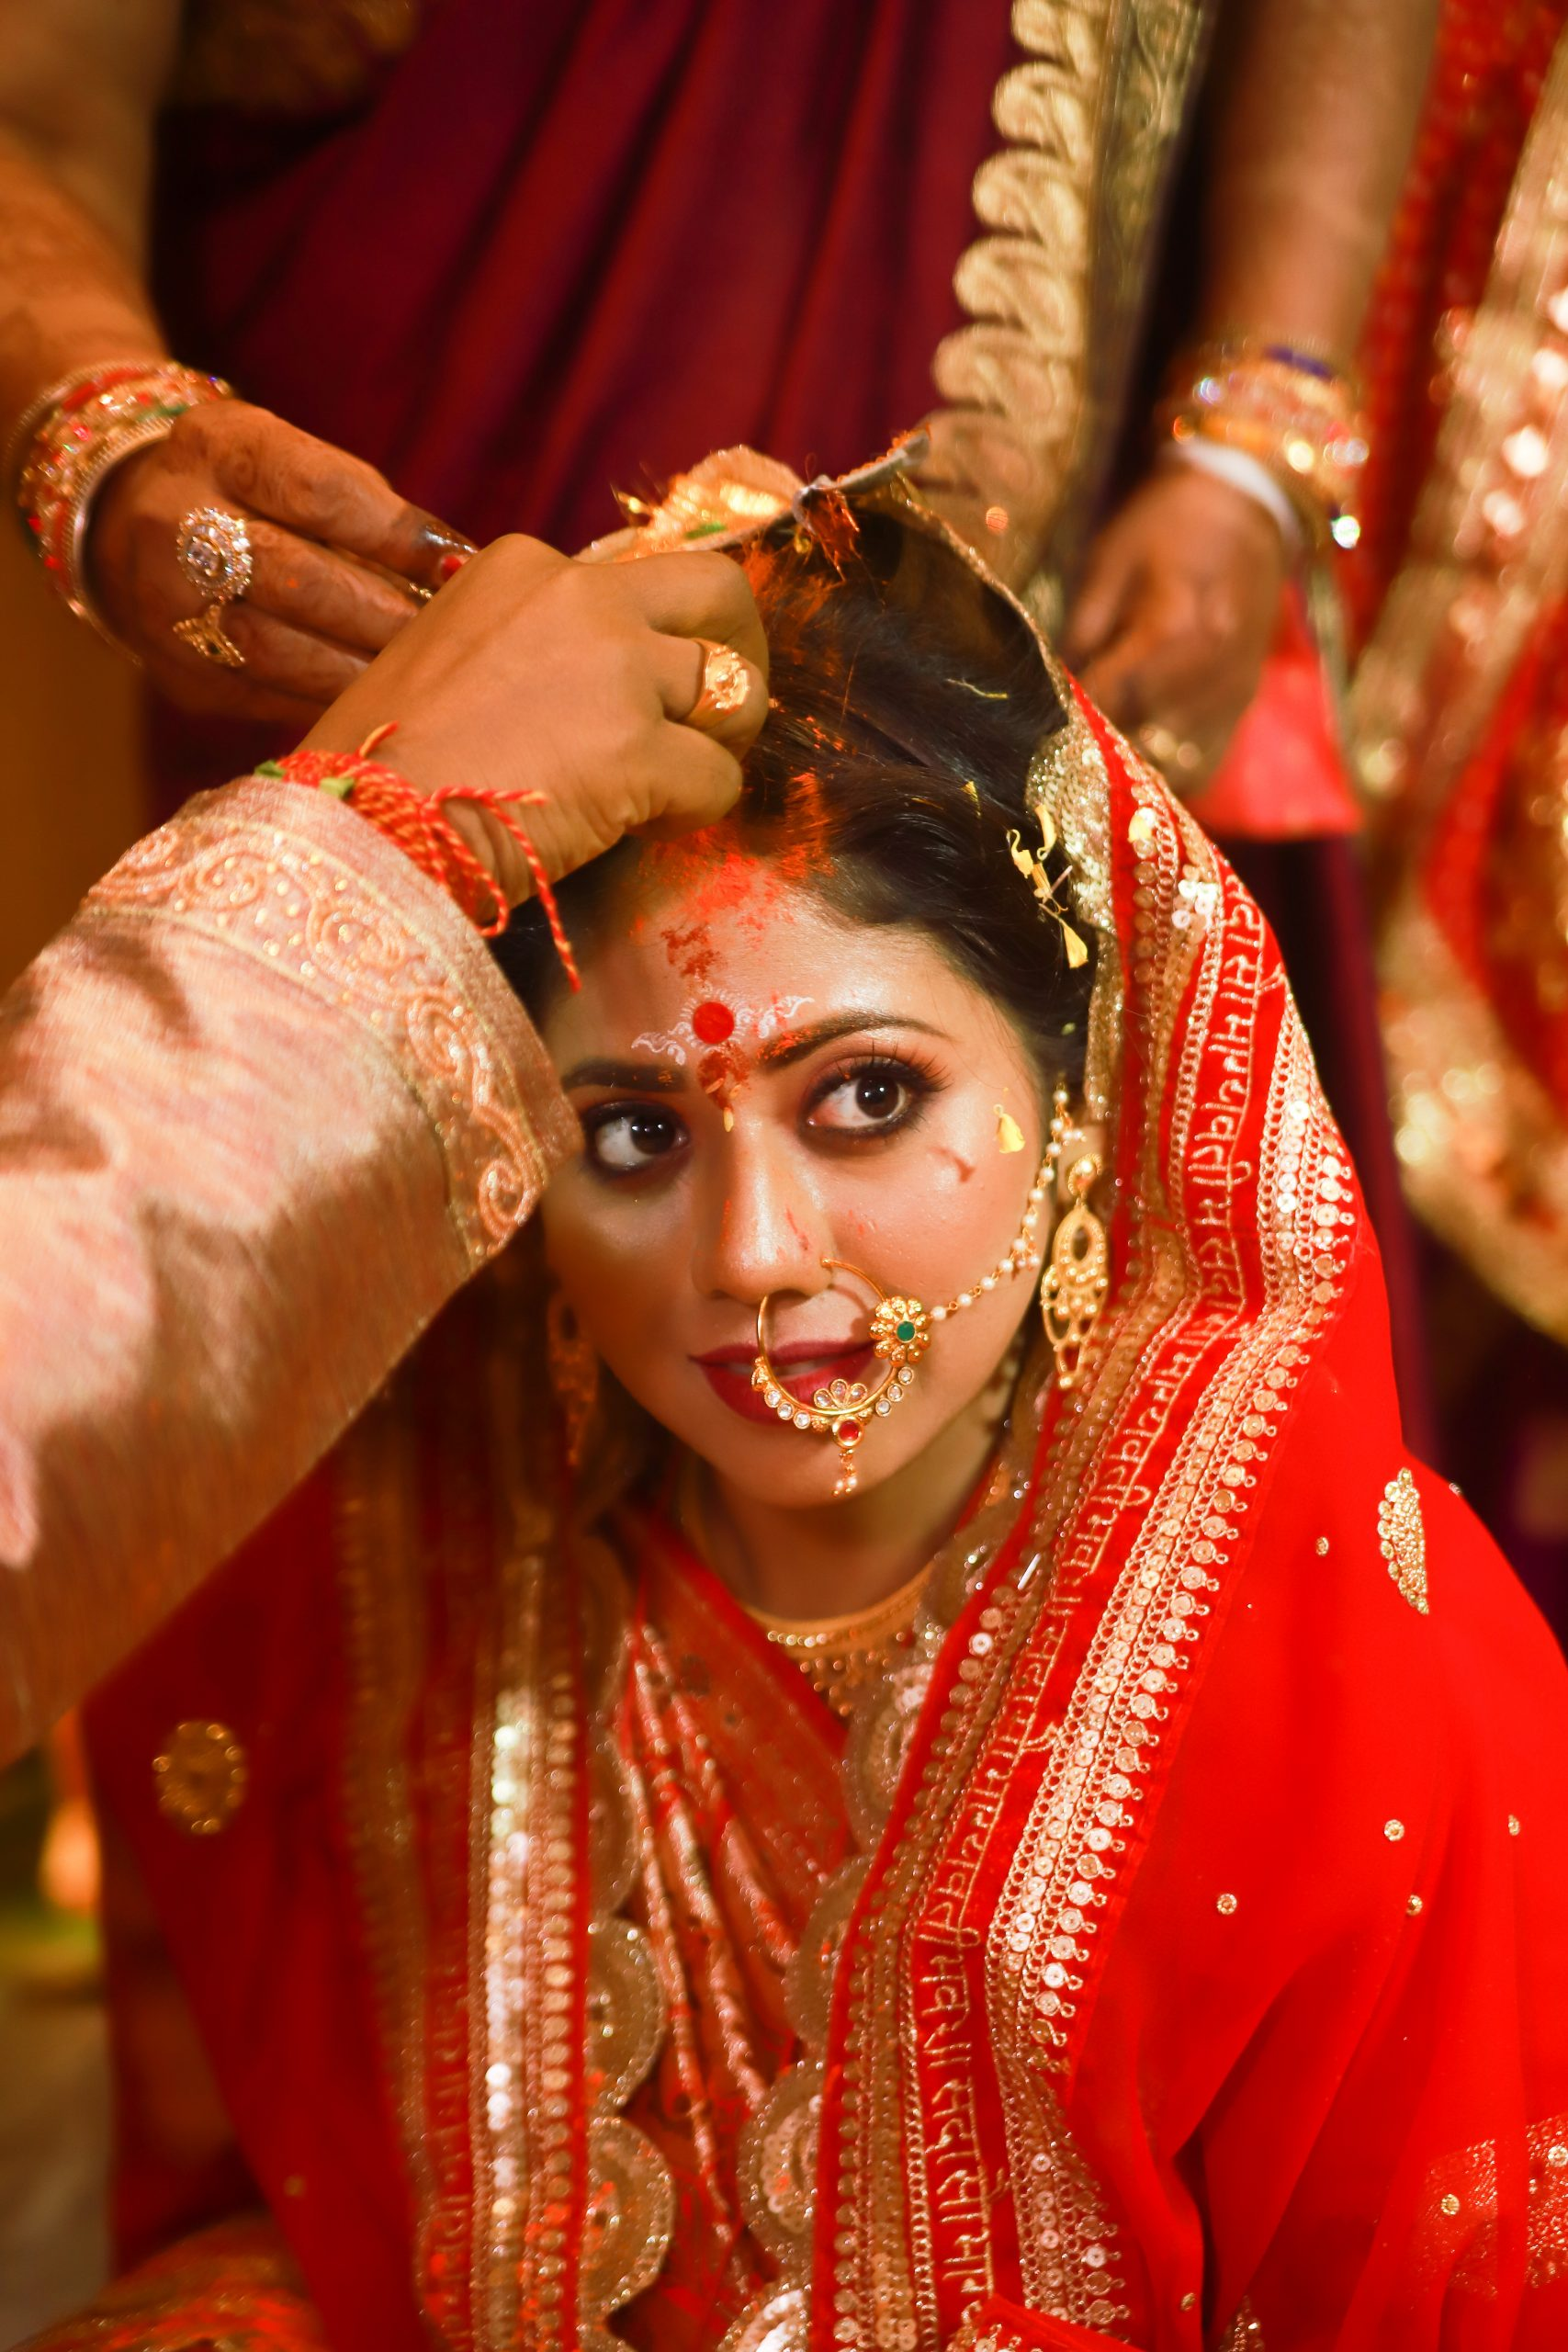 Indian Hindu wedding rituals